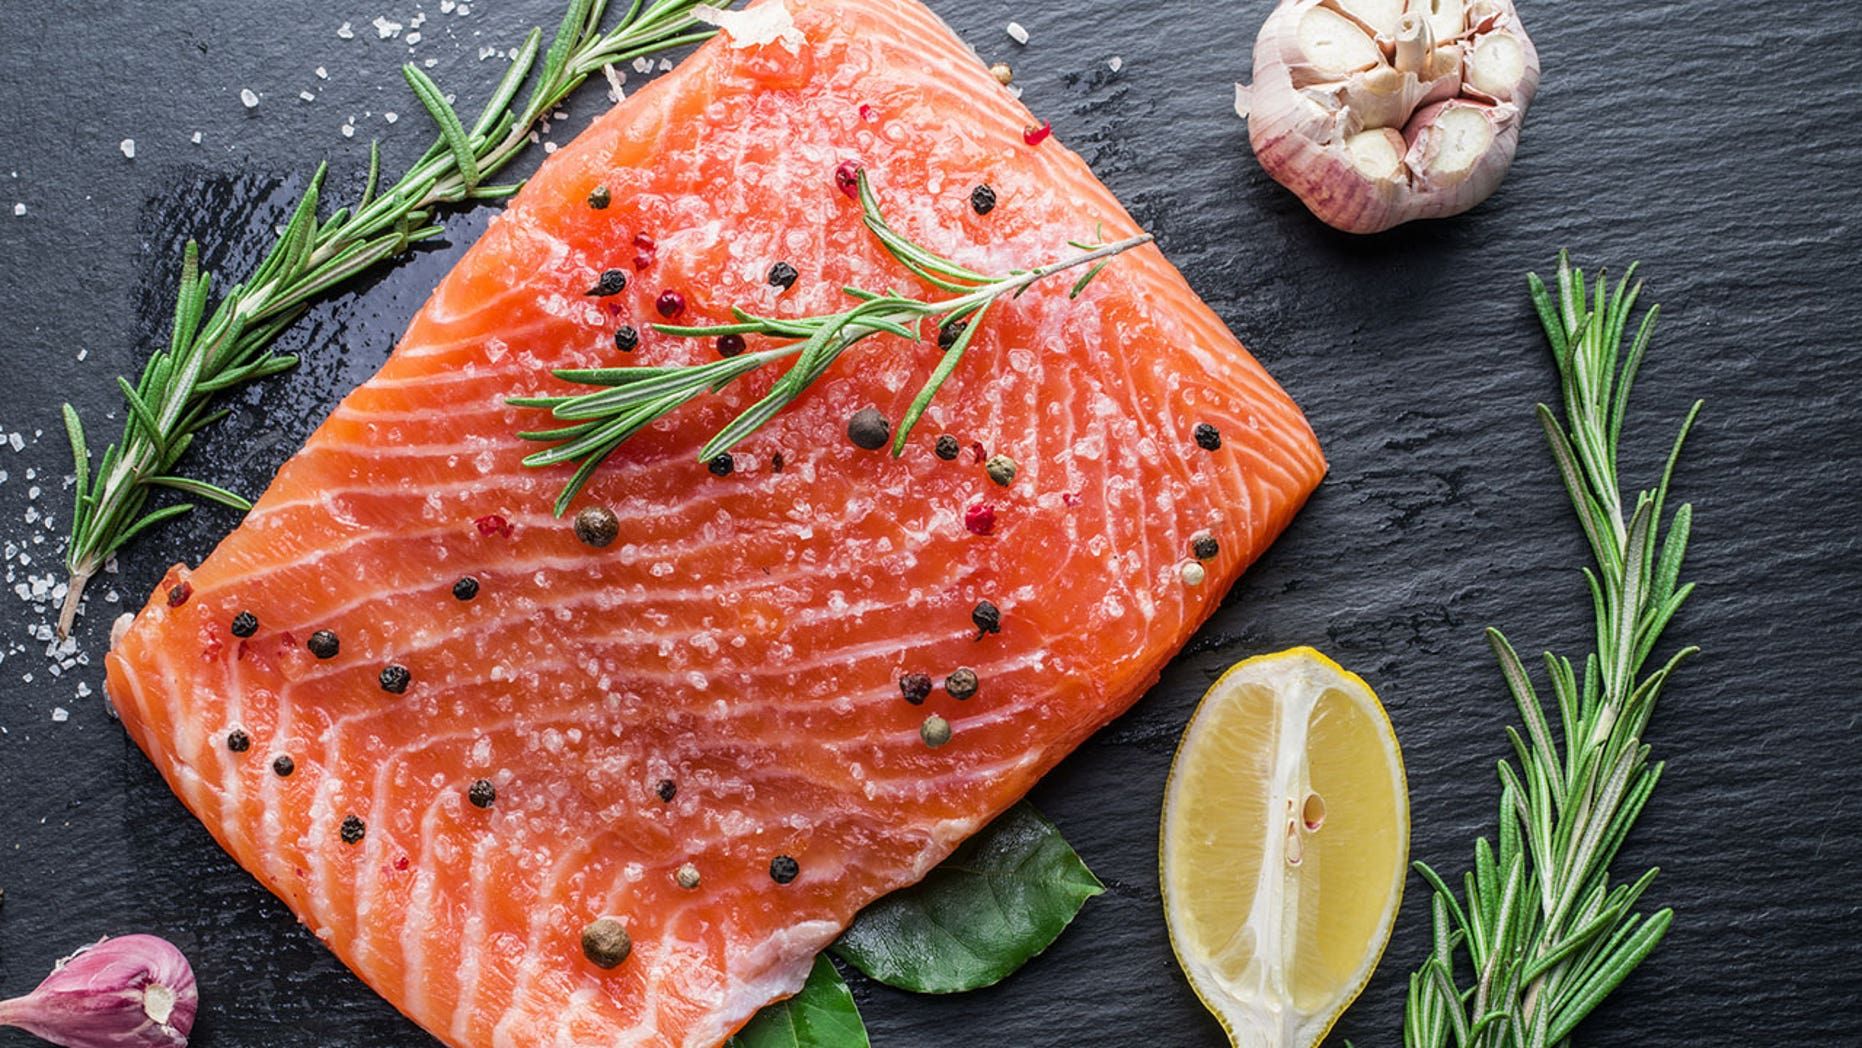 Yes, one salmon is more expensive than the other, but that's not the only difference.